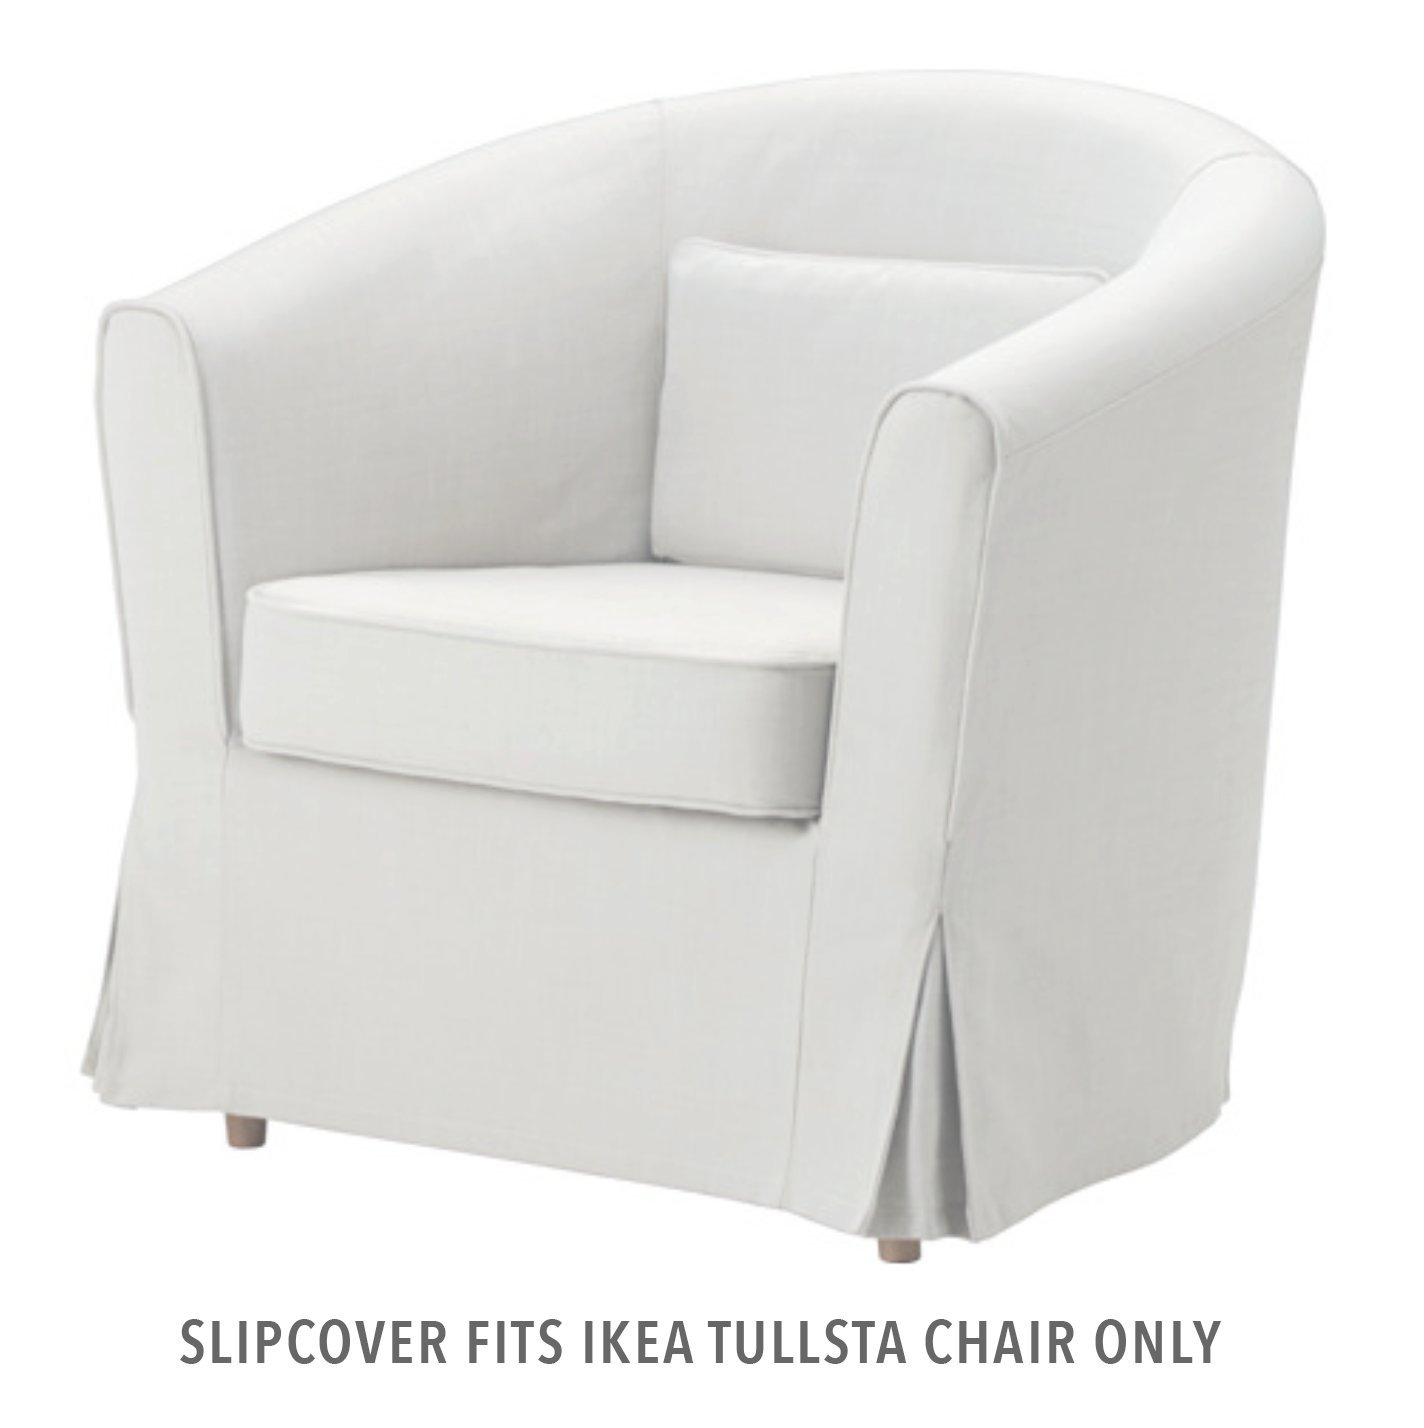 Amazon Ikea Tullsta Chair Slipcover Home & Kitchen